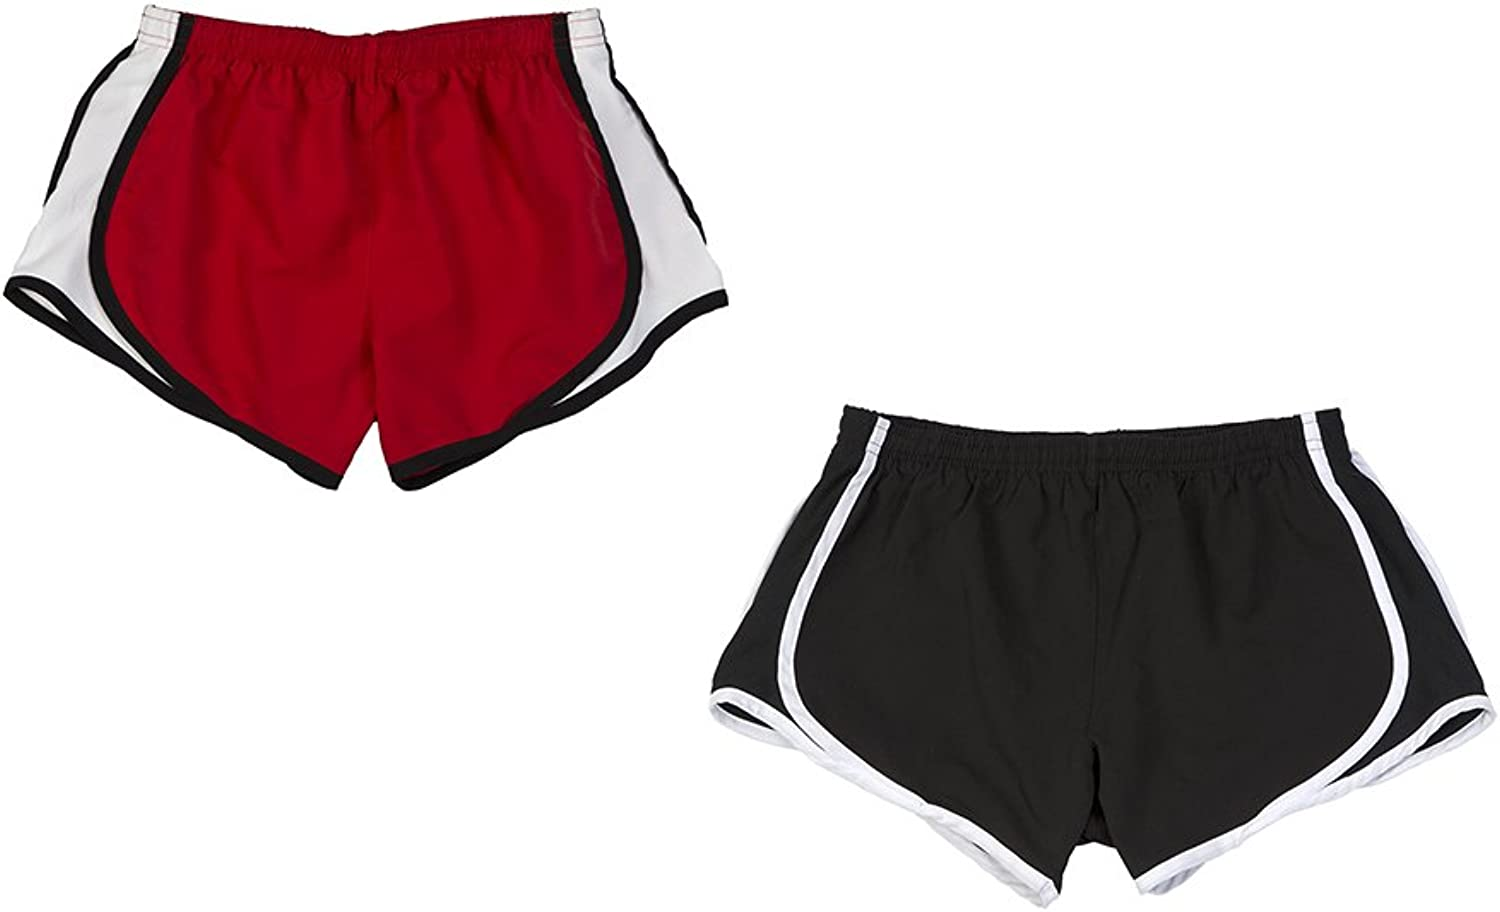 Boxercraft Women's Velocity Short 2pack Set, XL, Black Red